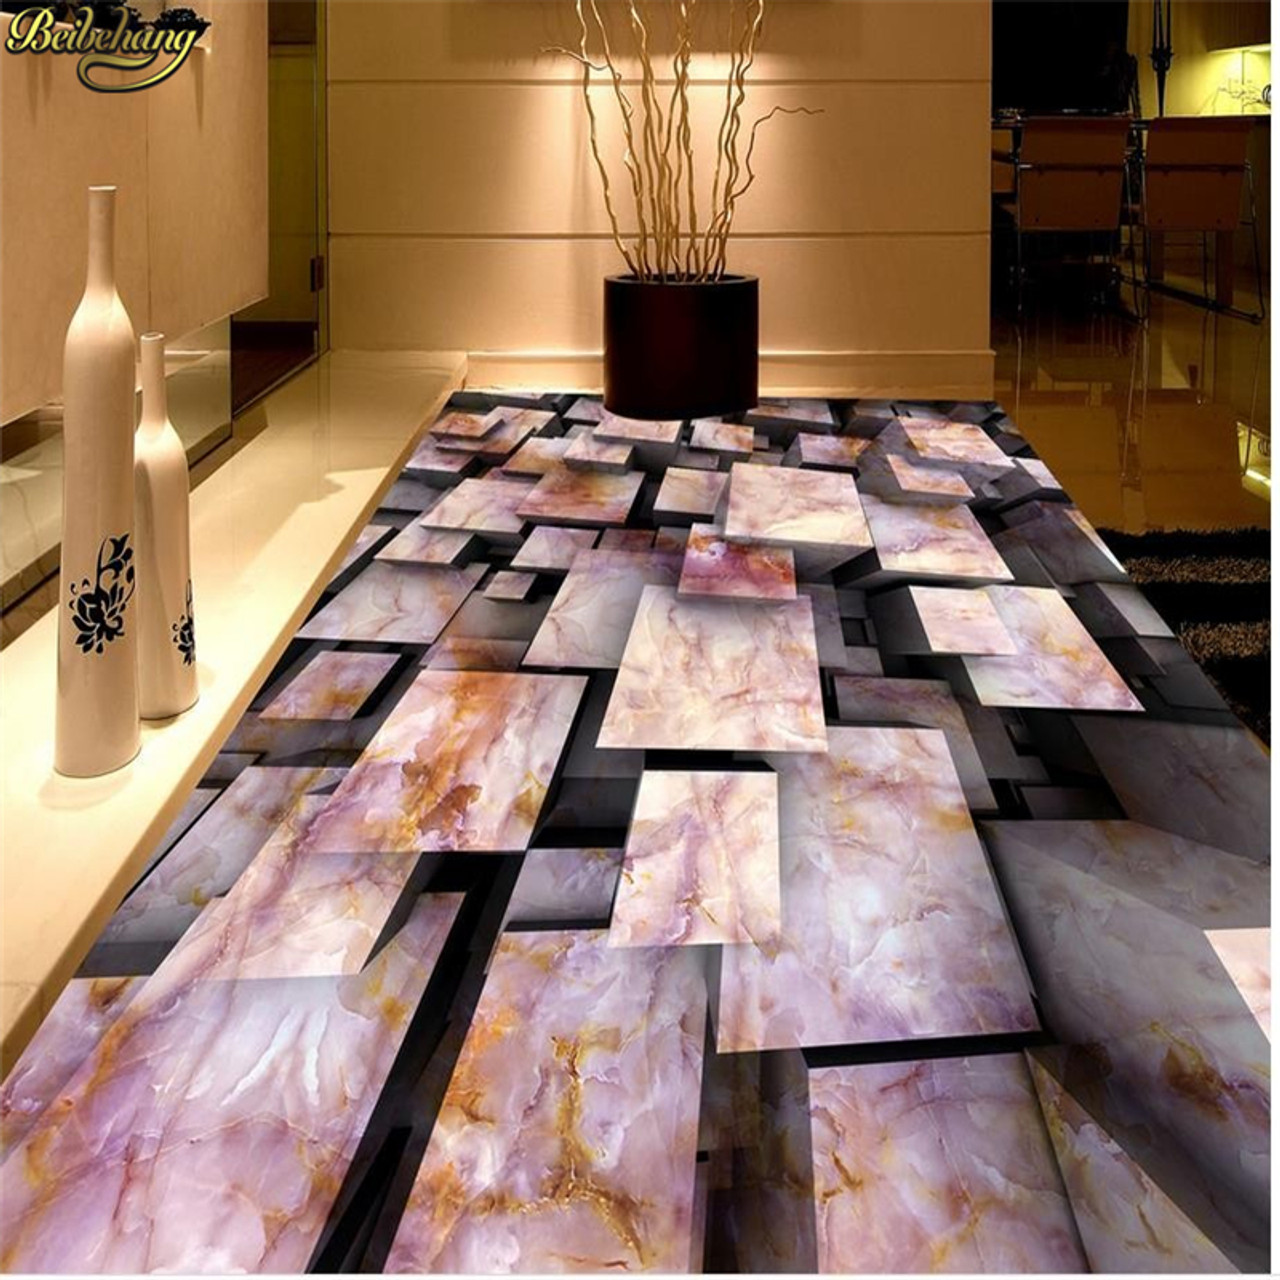 Beibehang Marble Floor 3d Bathroom Wallpaper Floor Murals Pvc Waterproof Flooring Custom Photo Self Adhesive 3d Floor